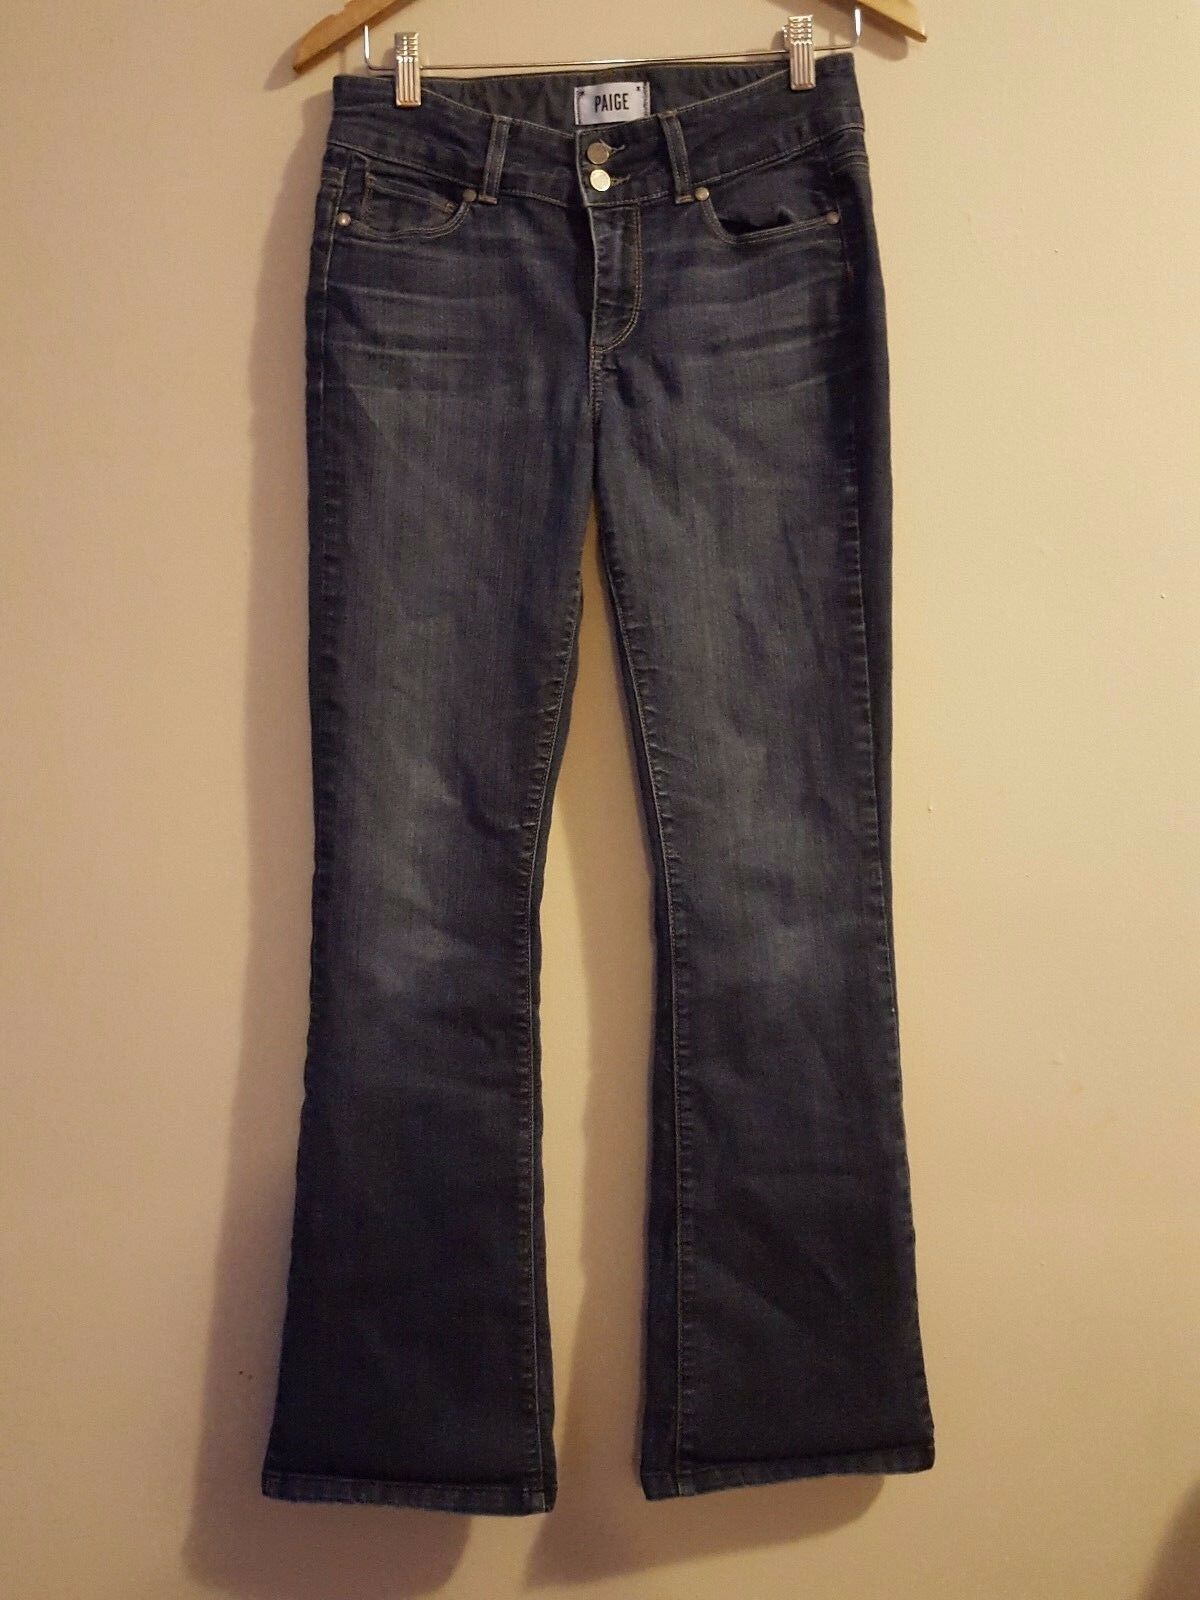 Paige Hidden Hills Boot Cut Jeans in Stream Size 28 X 30